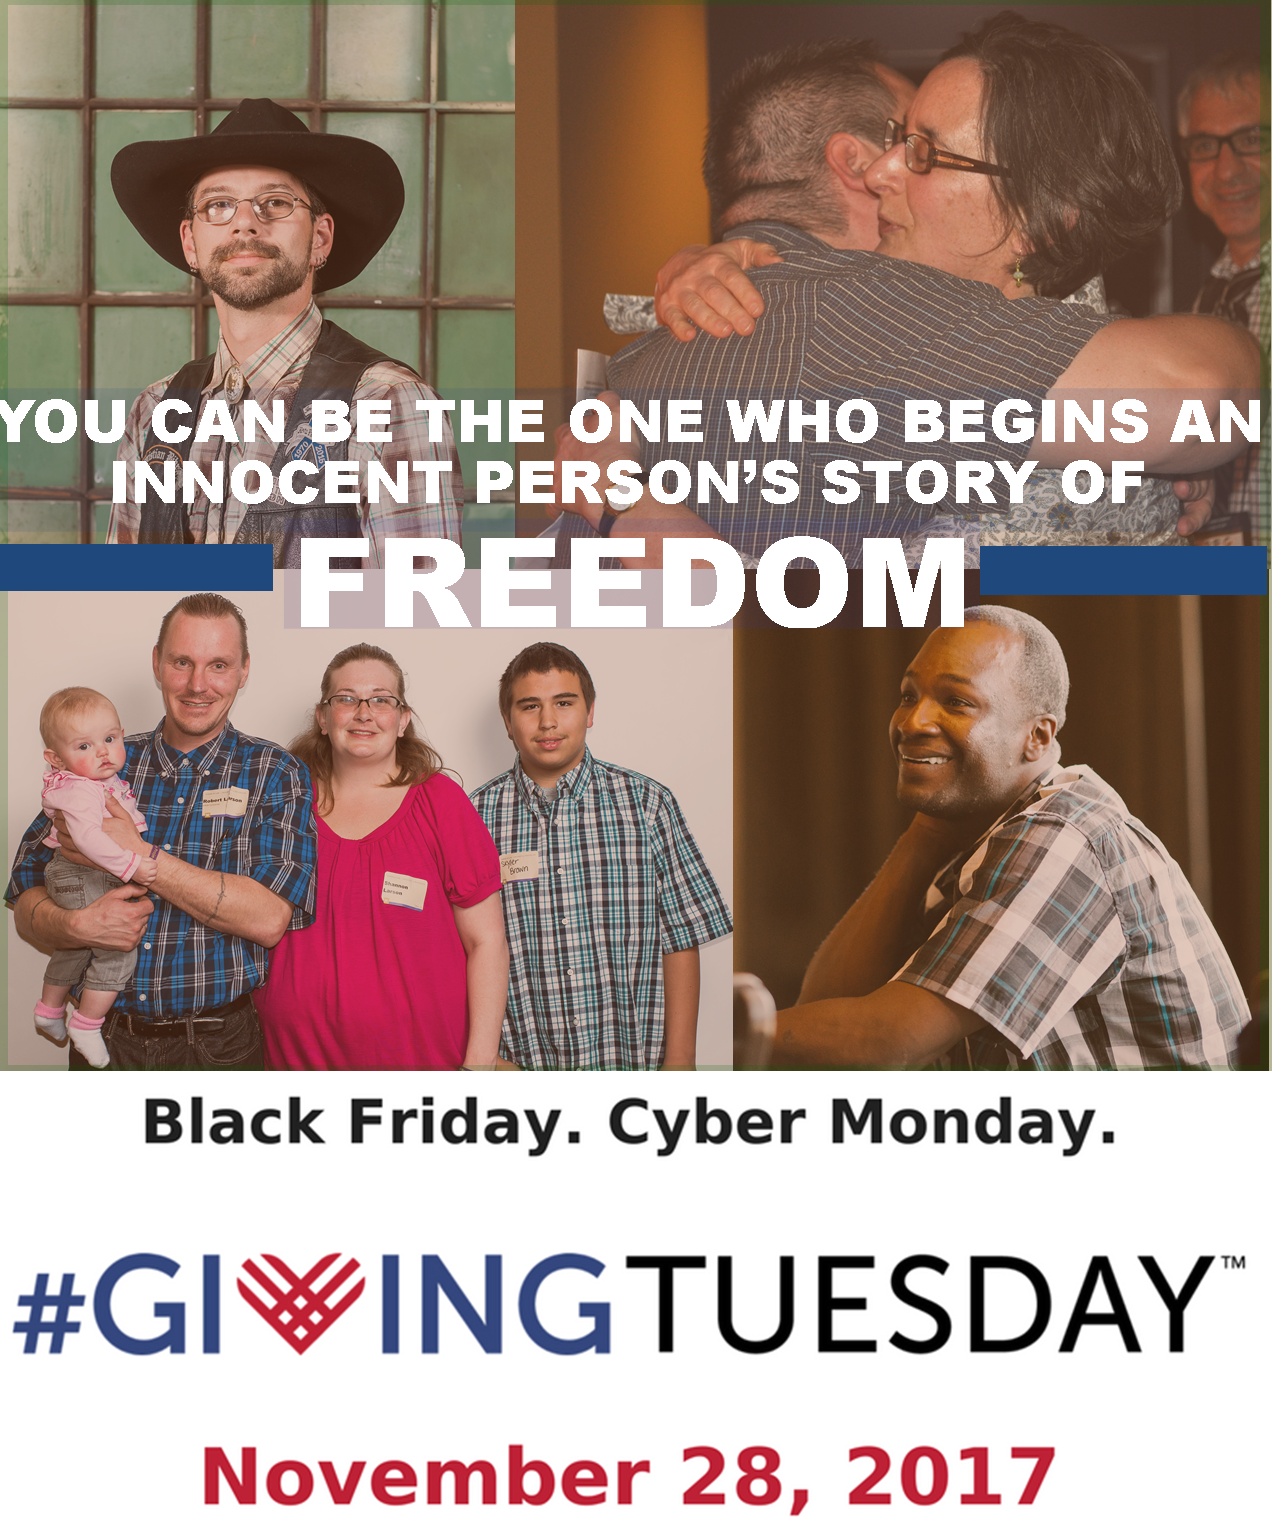 Begin a Freedom Story on #GivingTuesday